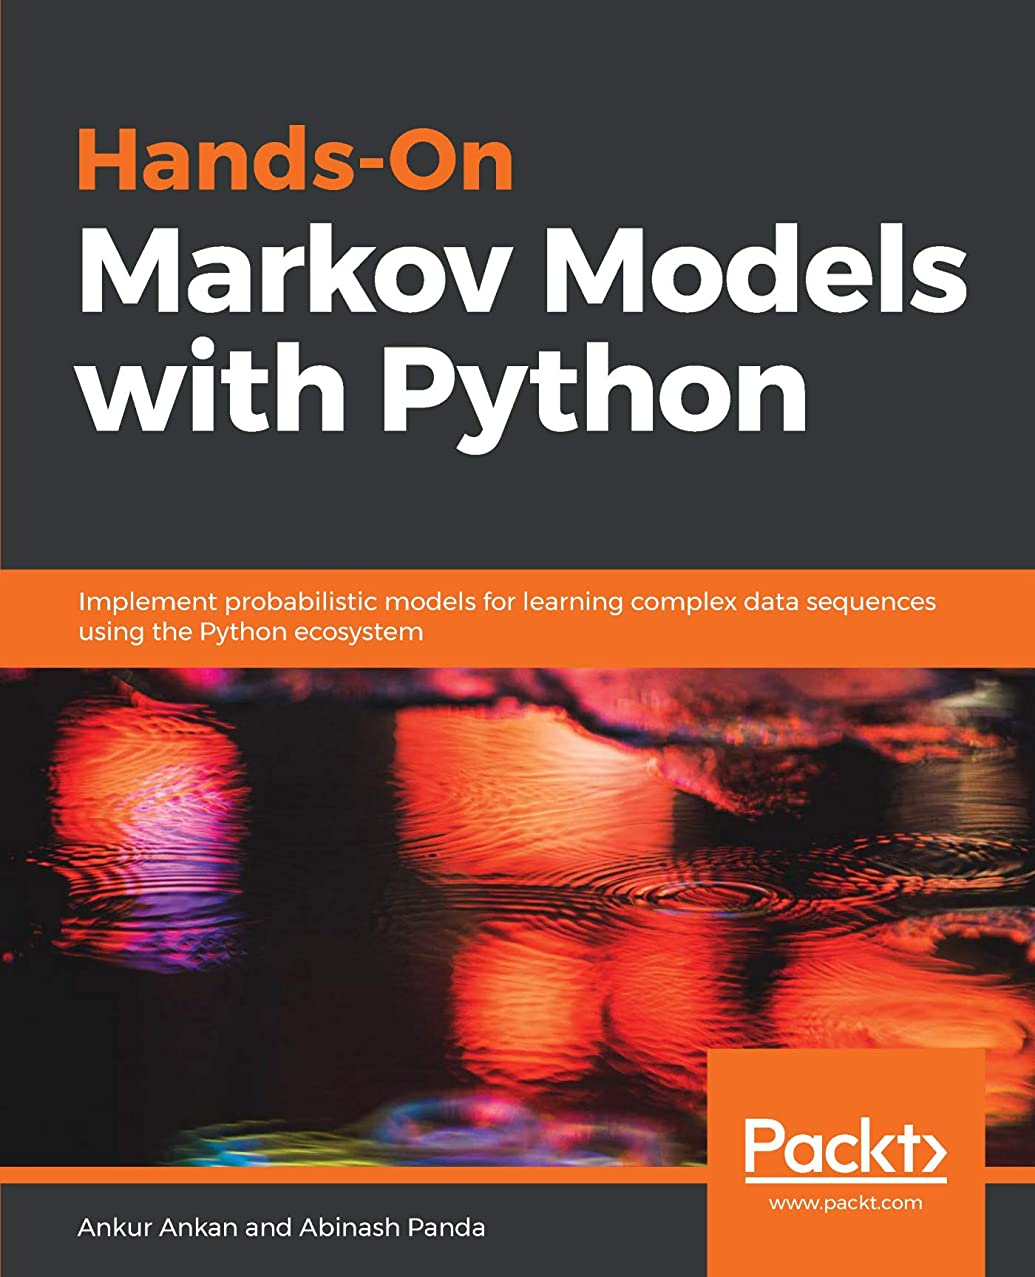 障害意気消沈したアプローチHands-On Markov Models with Python: Implement probabilistic models for learning complex data sequences using the Python ecosystem (English Edition)